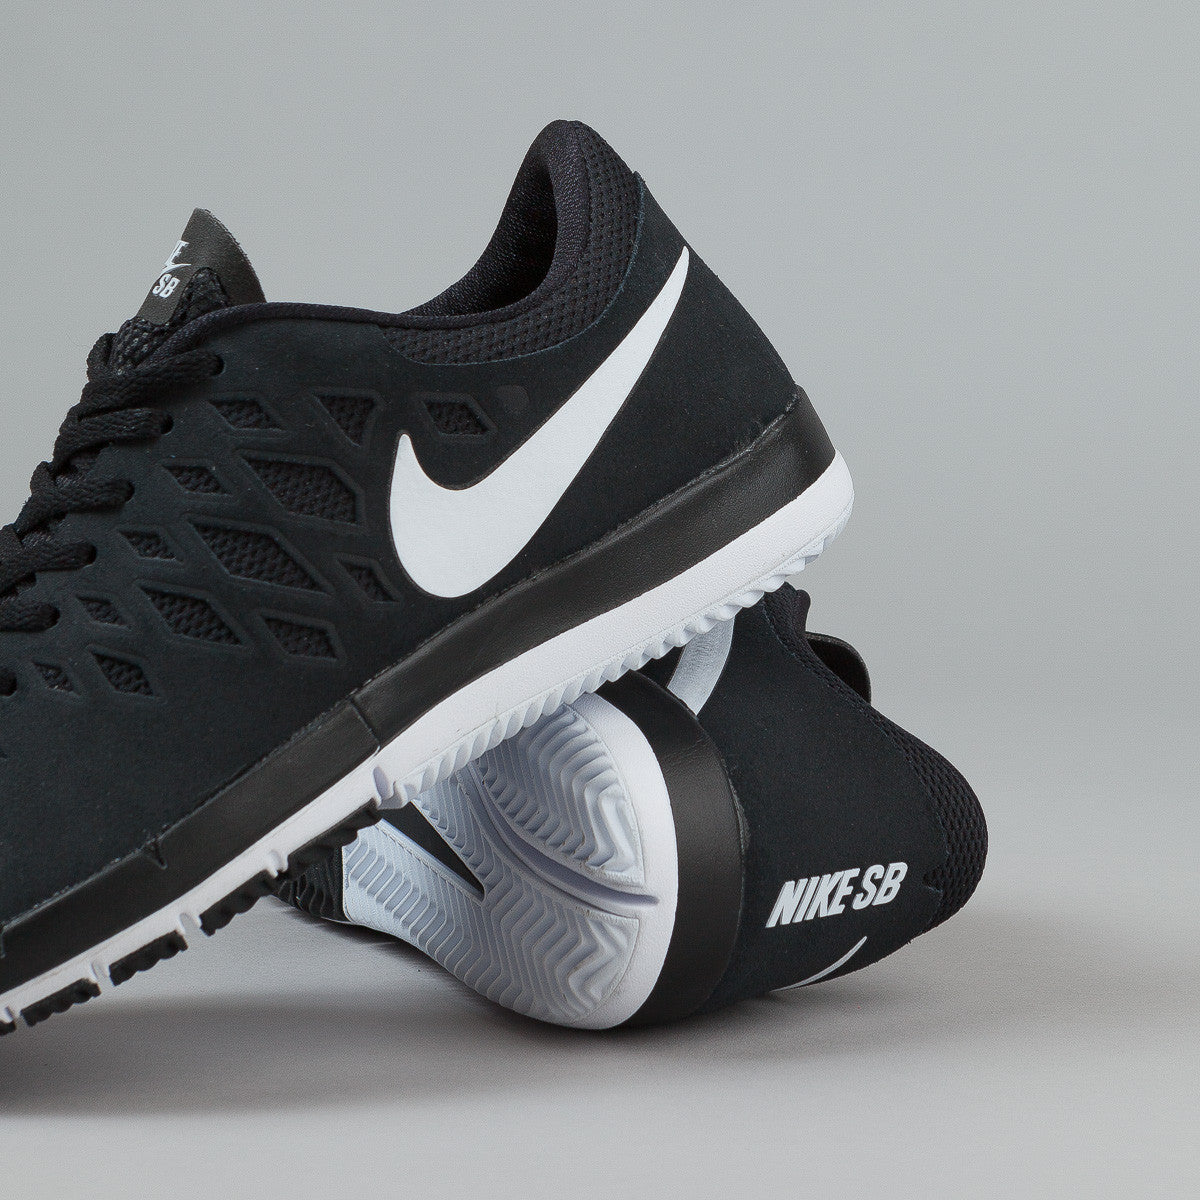 Nike SB Free Shoes - Black / White